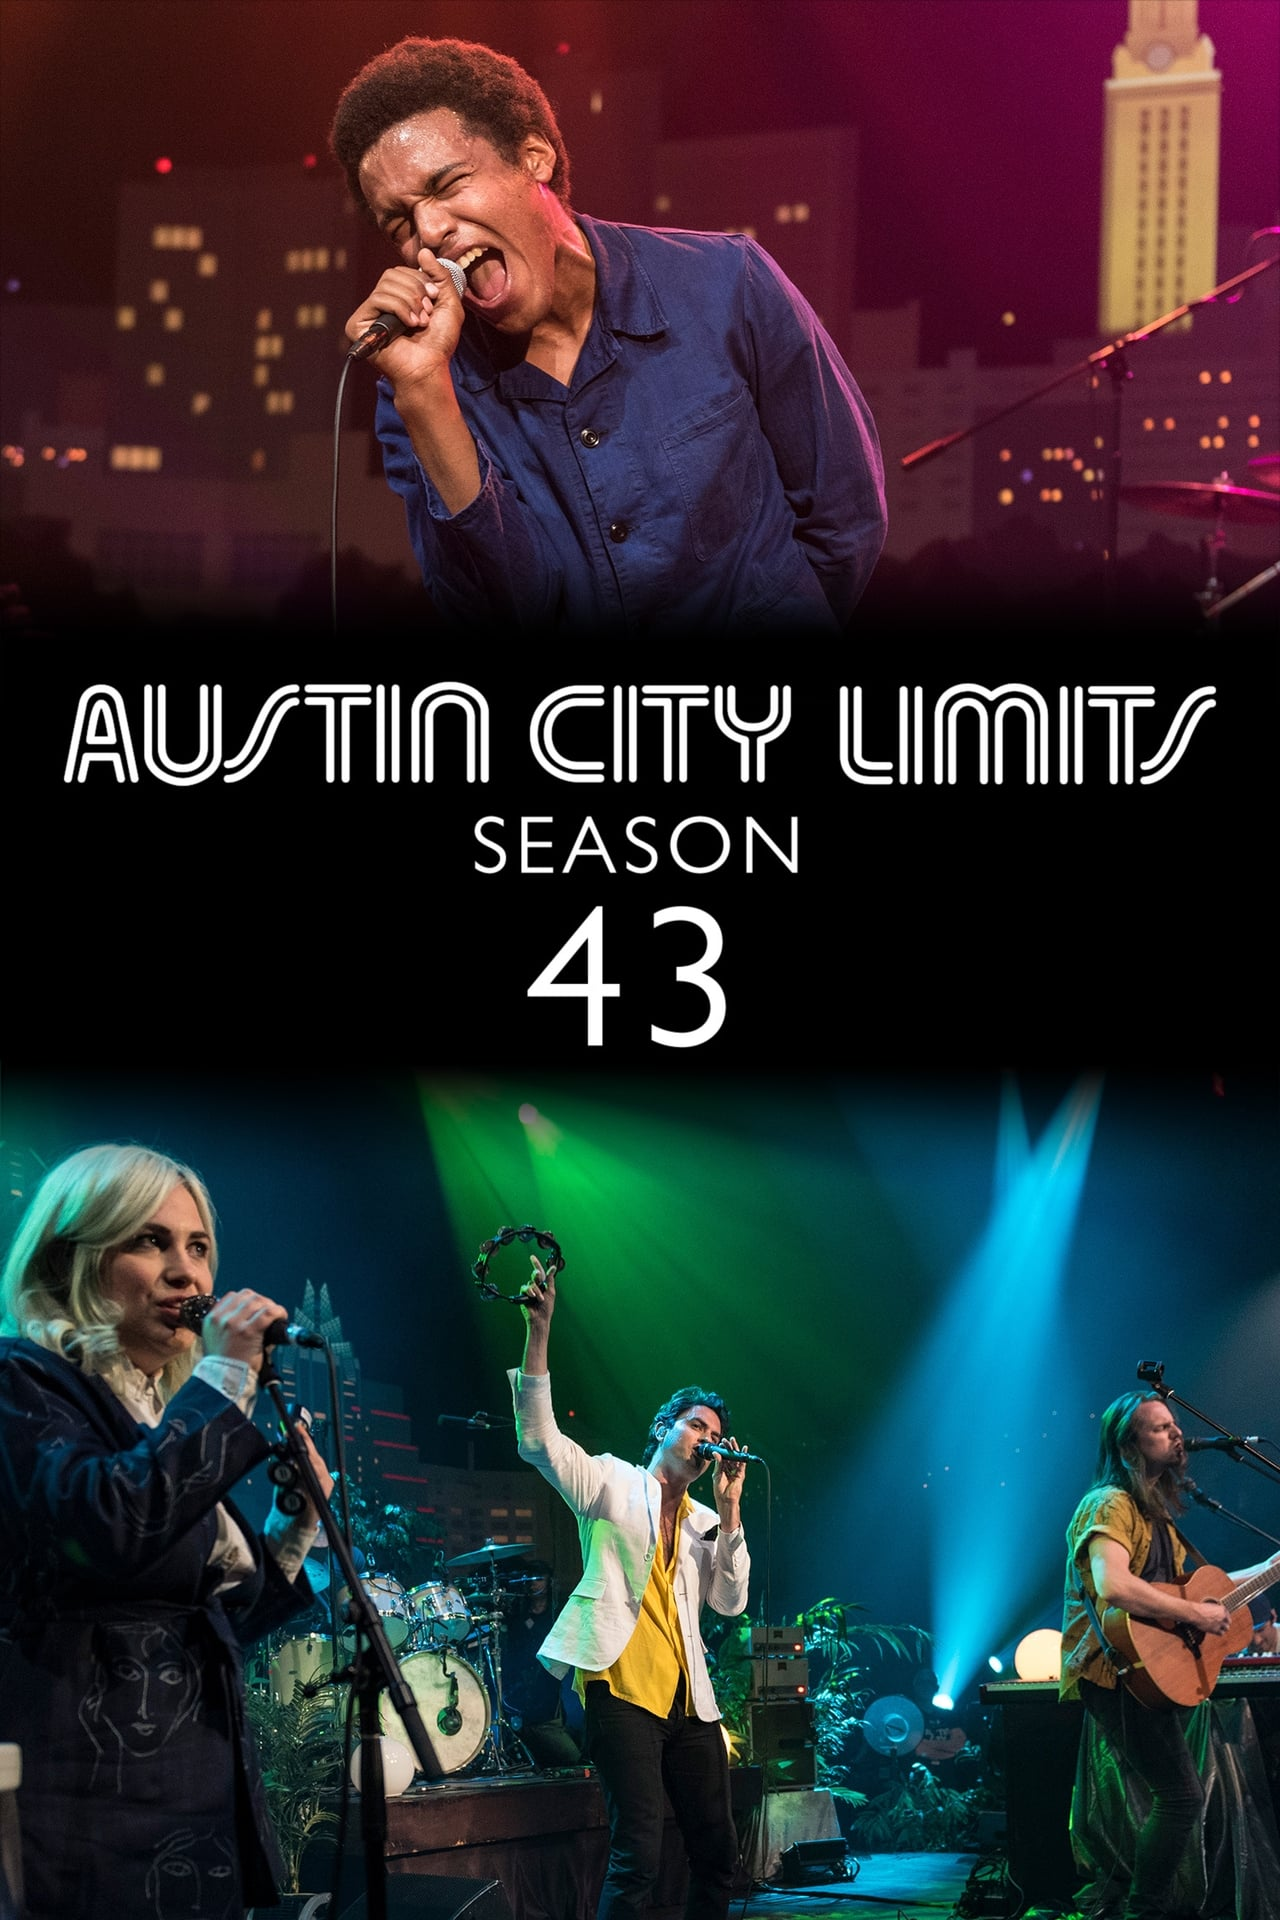 Putlocker Austin City Limits Season 43 (2017)